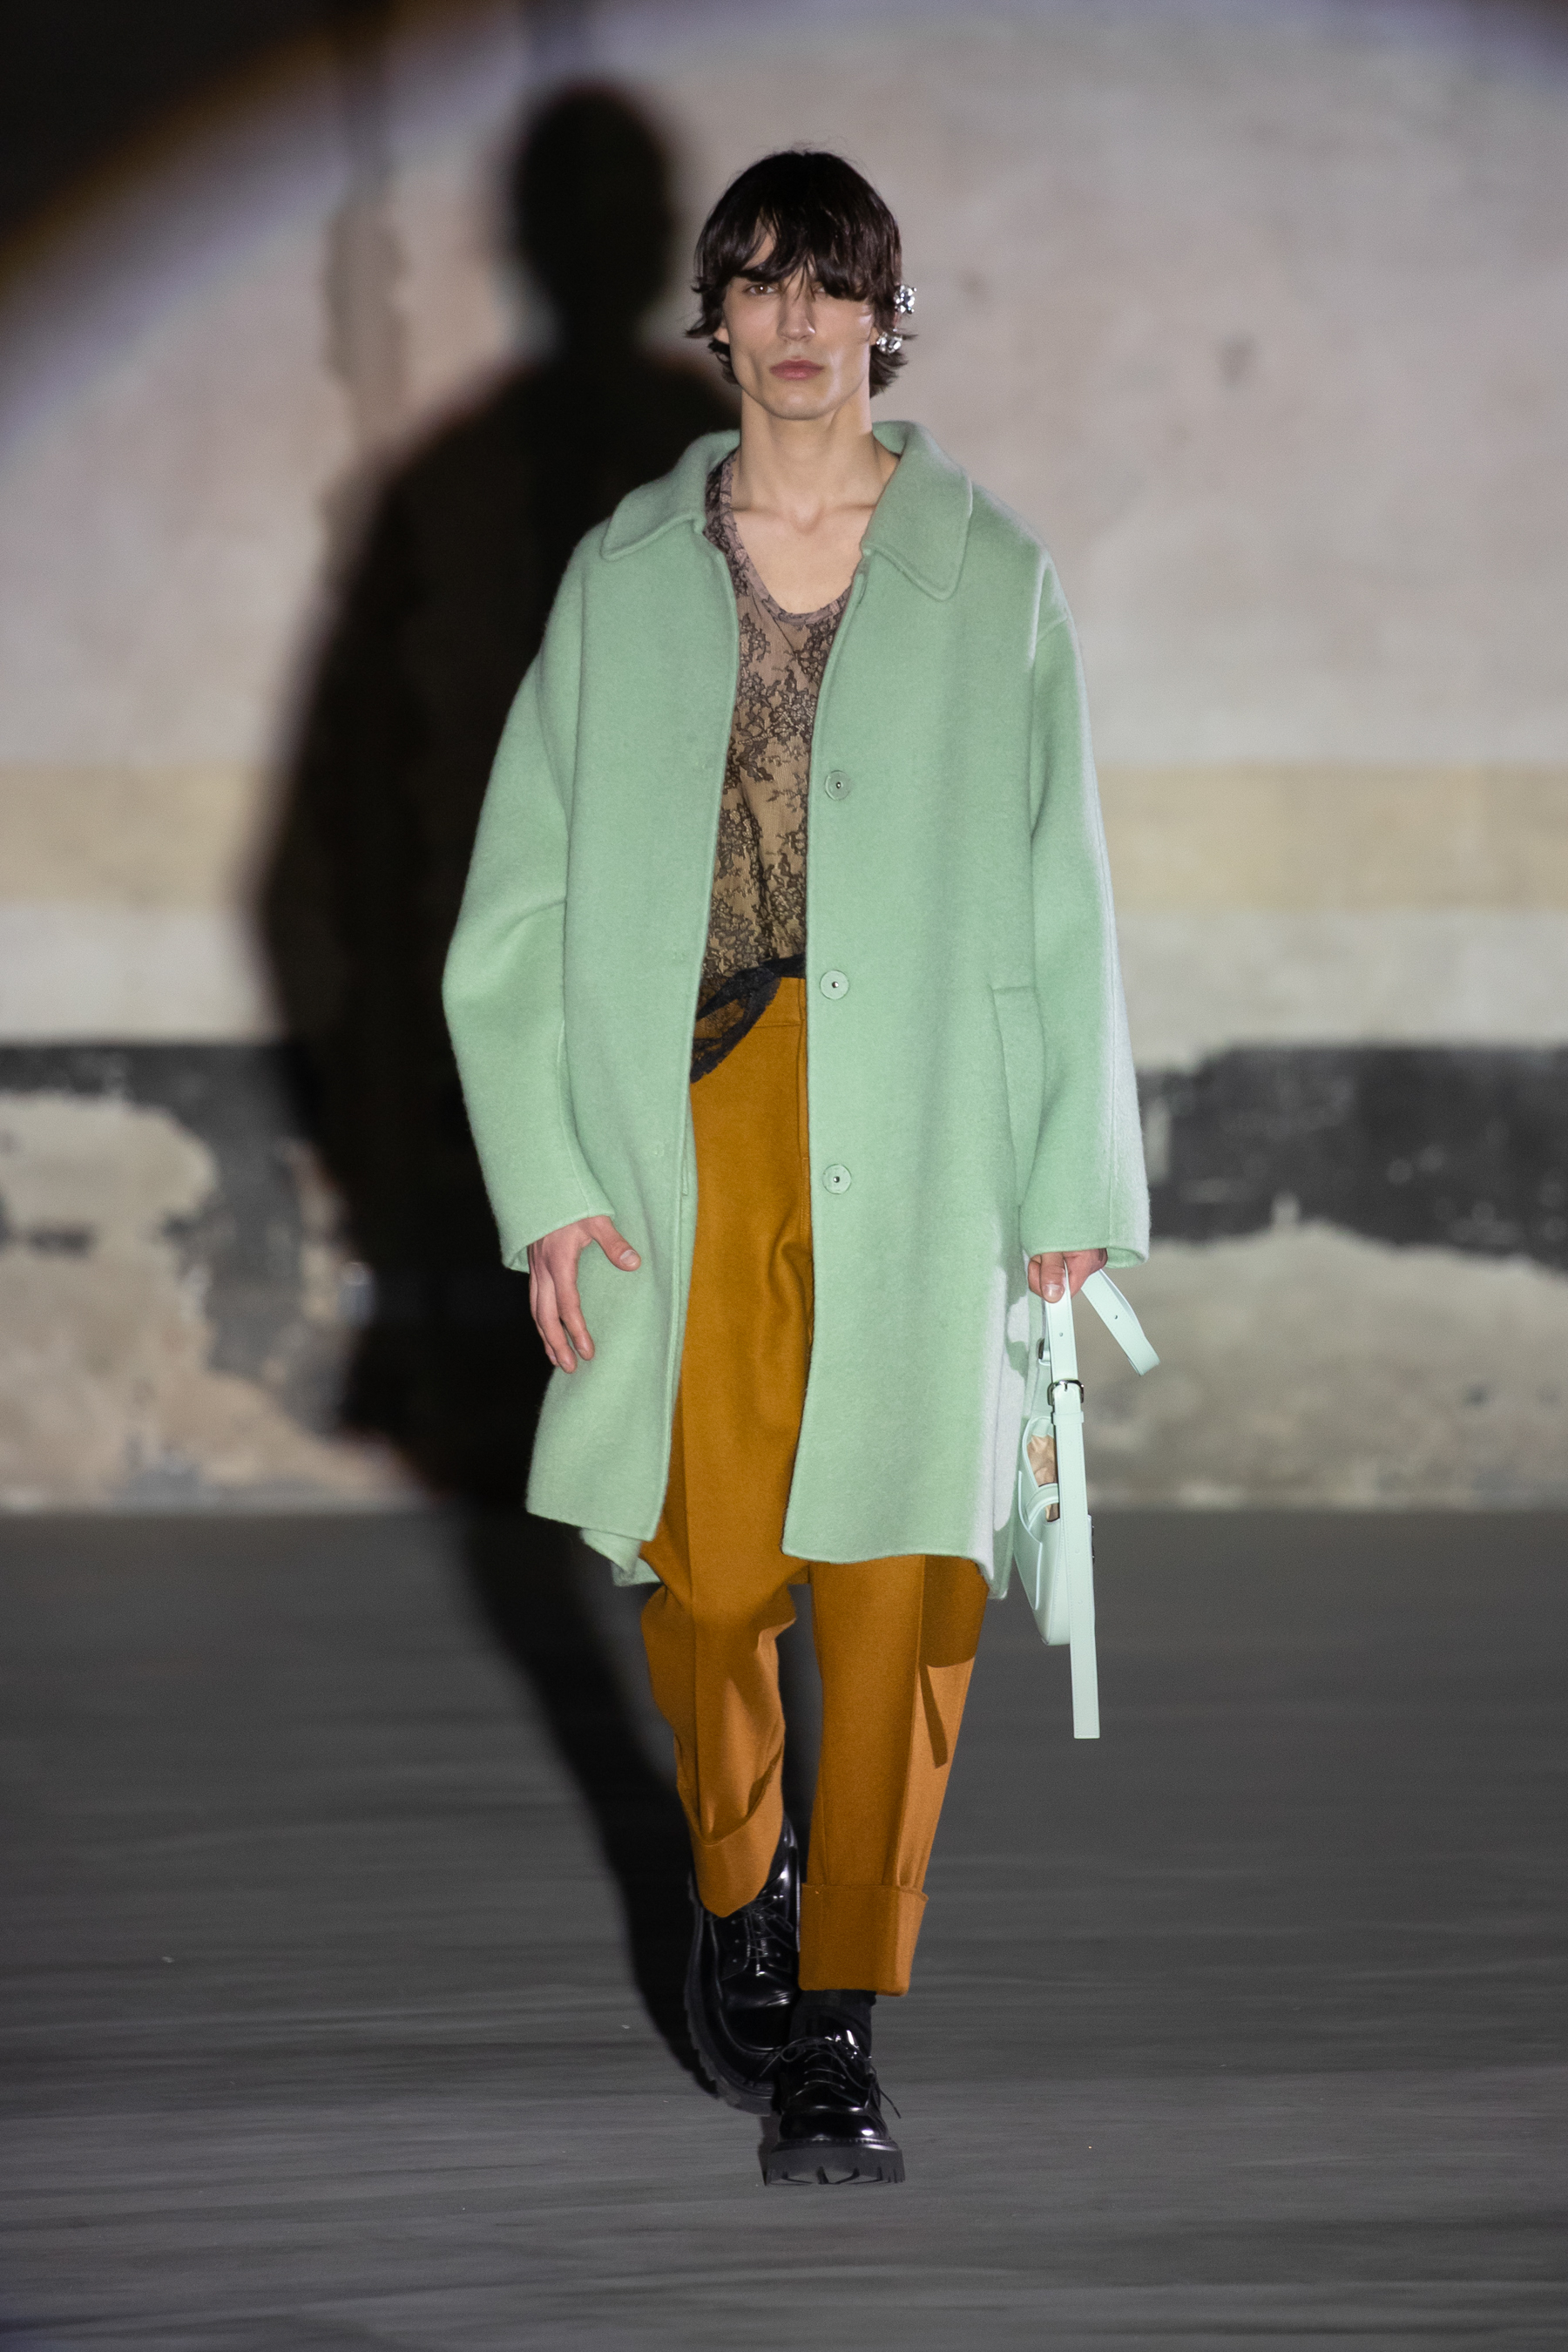 N°21 Fall 2021 Fashion Show